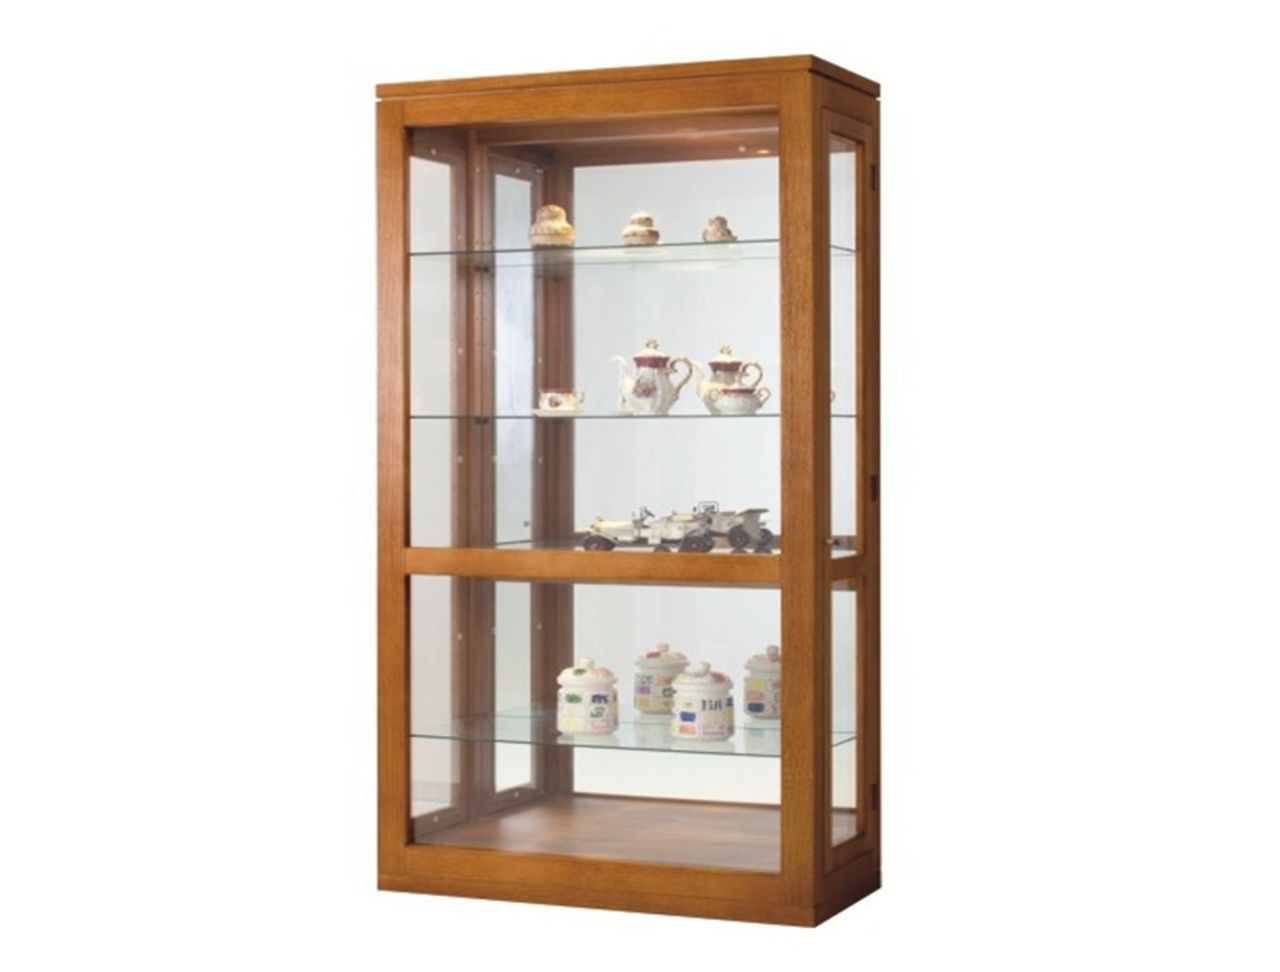 CHINA DISPLAY UNIT WITH GROOVE TOP 2 SIDE DOORS 4 GLASS SHELVES MIRROR